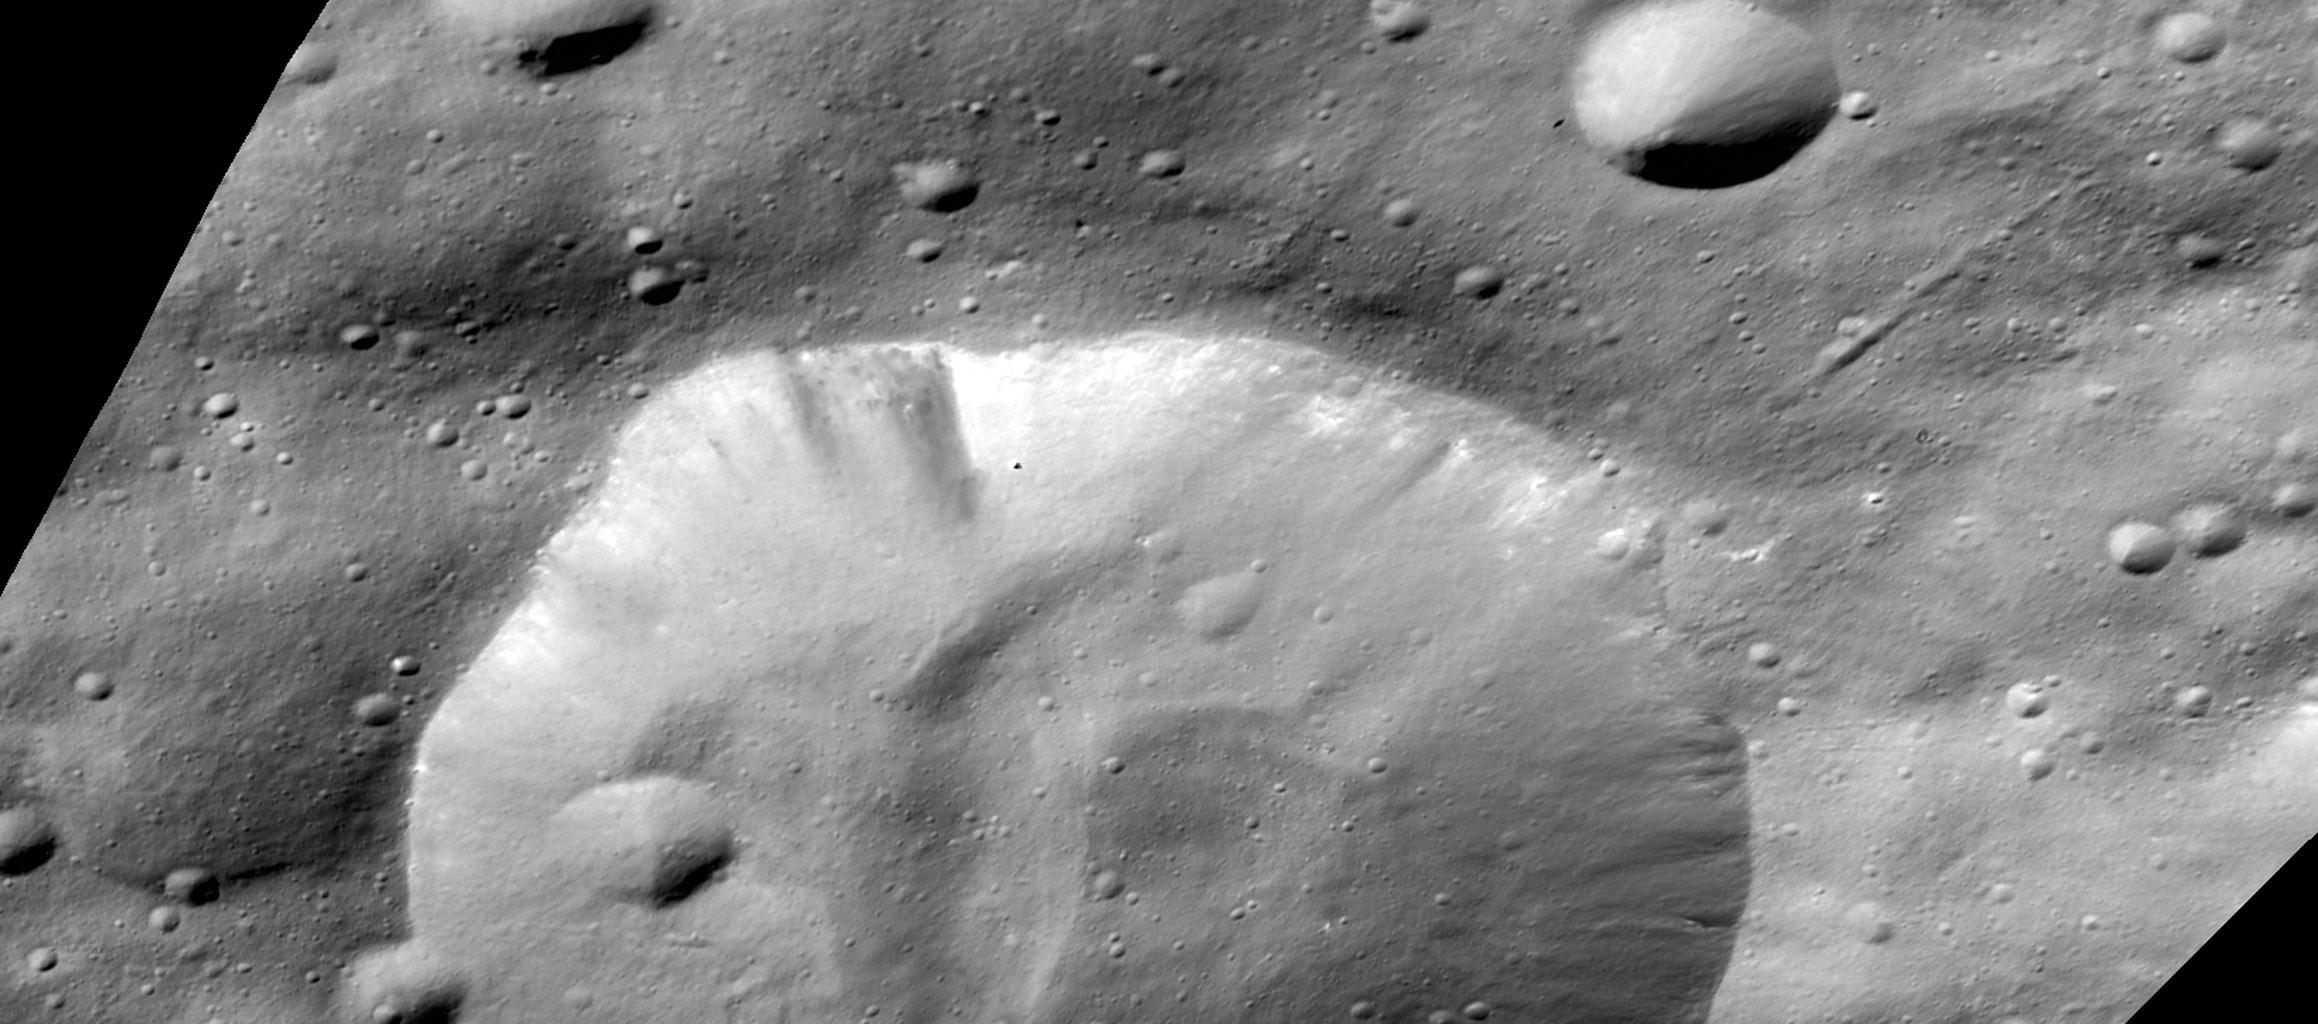 This image from NASA's Dawn mission shows a crater in the northern hemisphere of the giant asteroid Vesta called Bellicia.